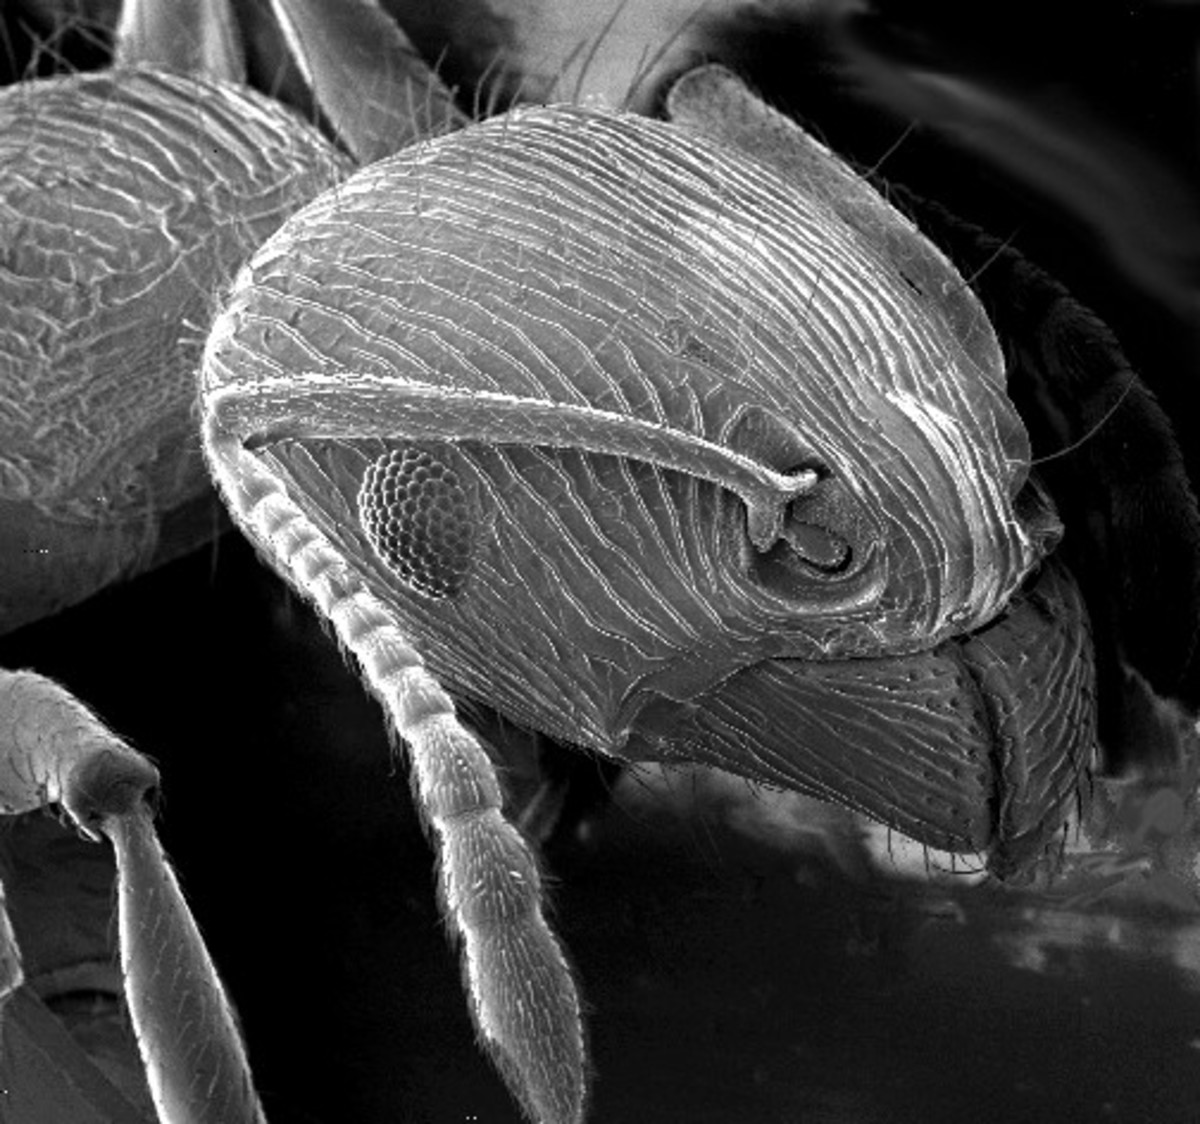 This is an ant as seen through a scanning electron microscope.